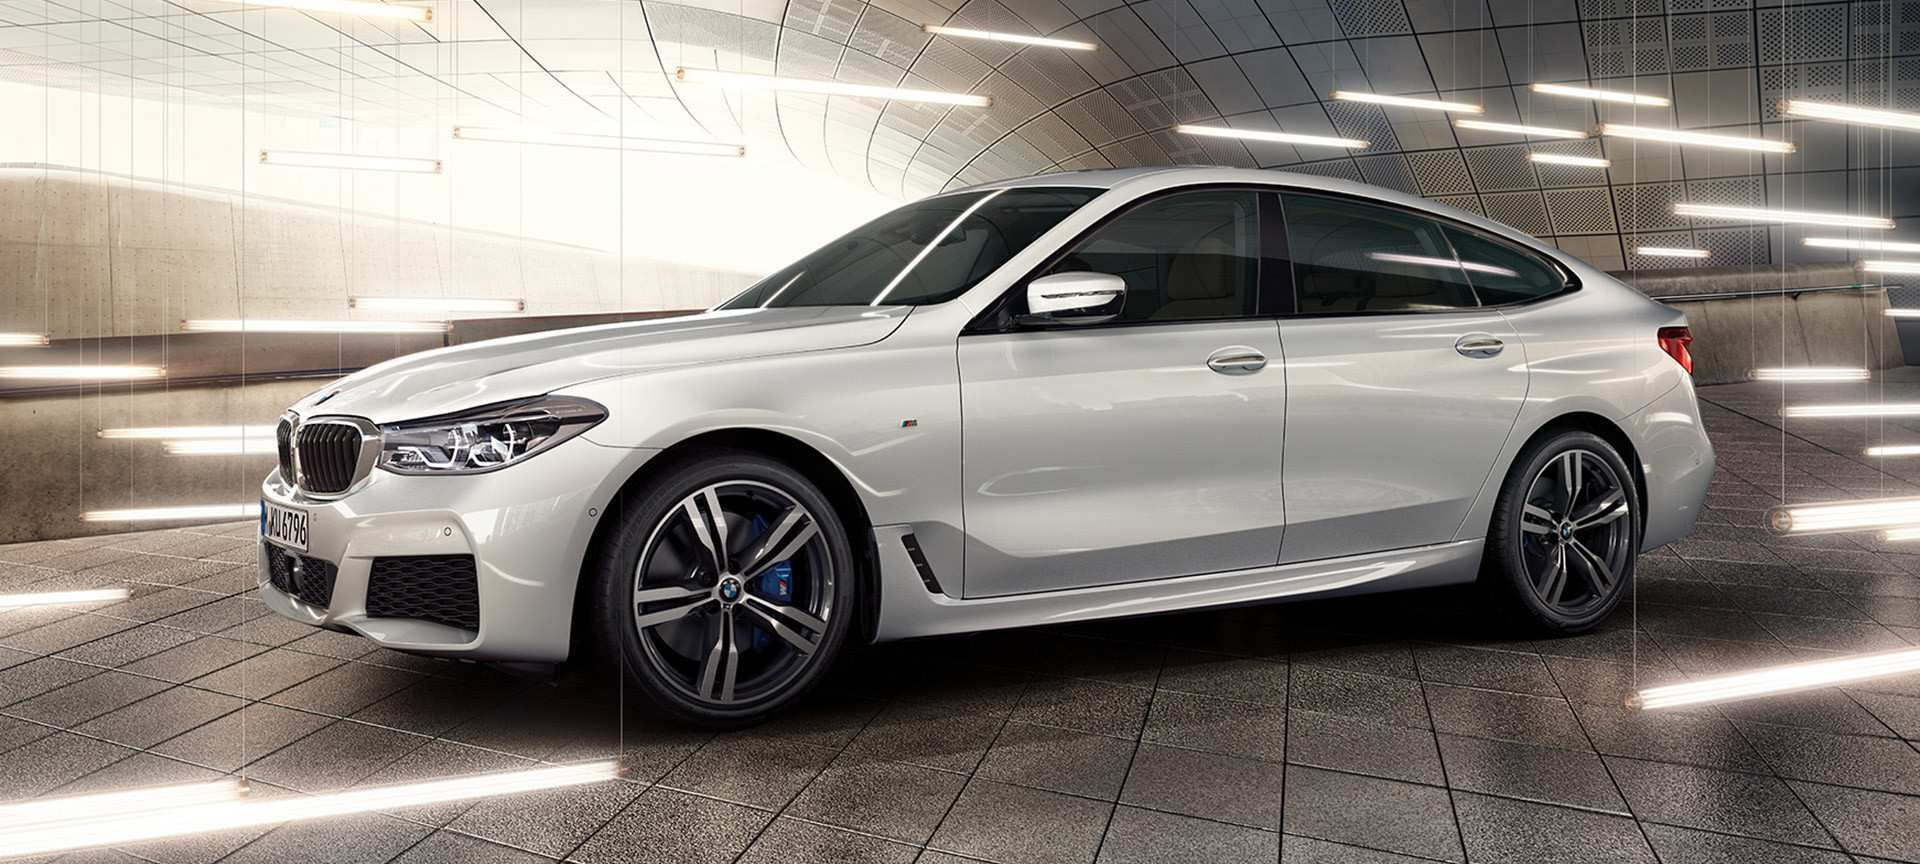 81 New 2020 Bmw 6 Series Pricing